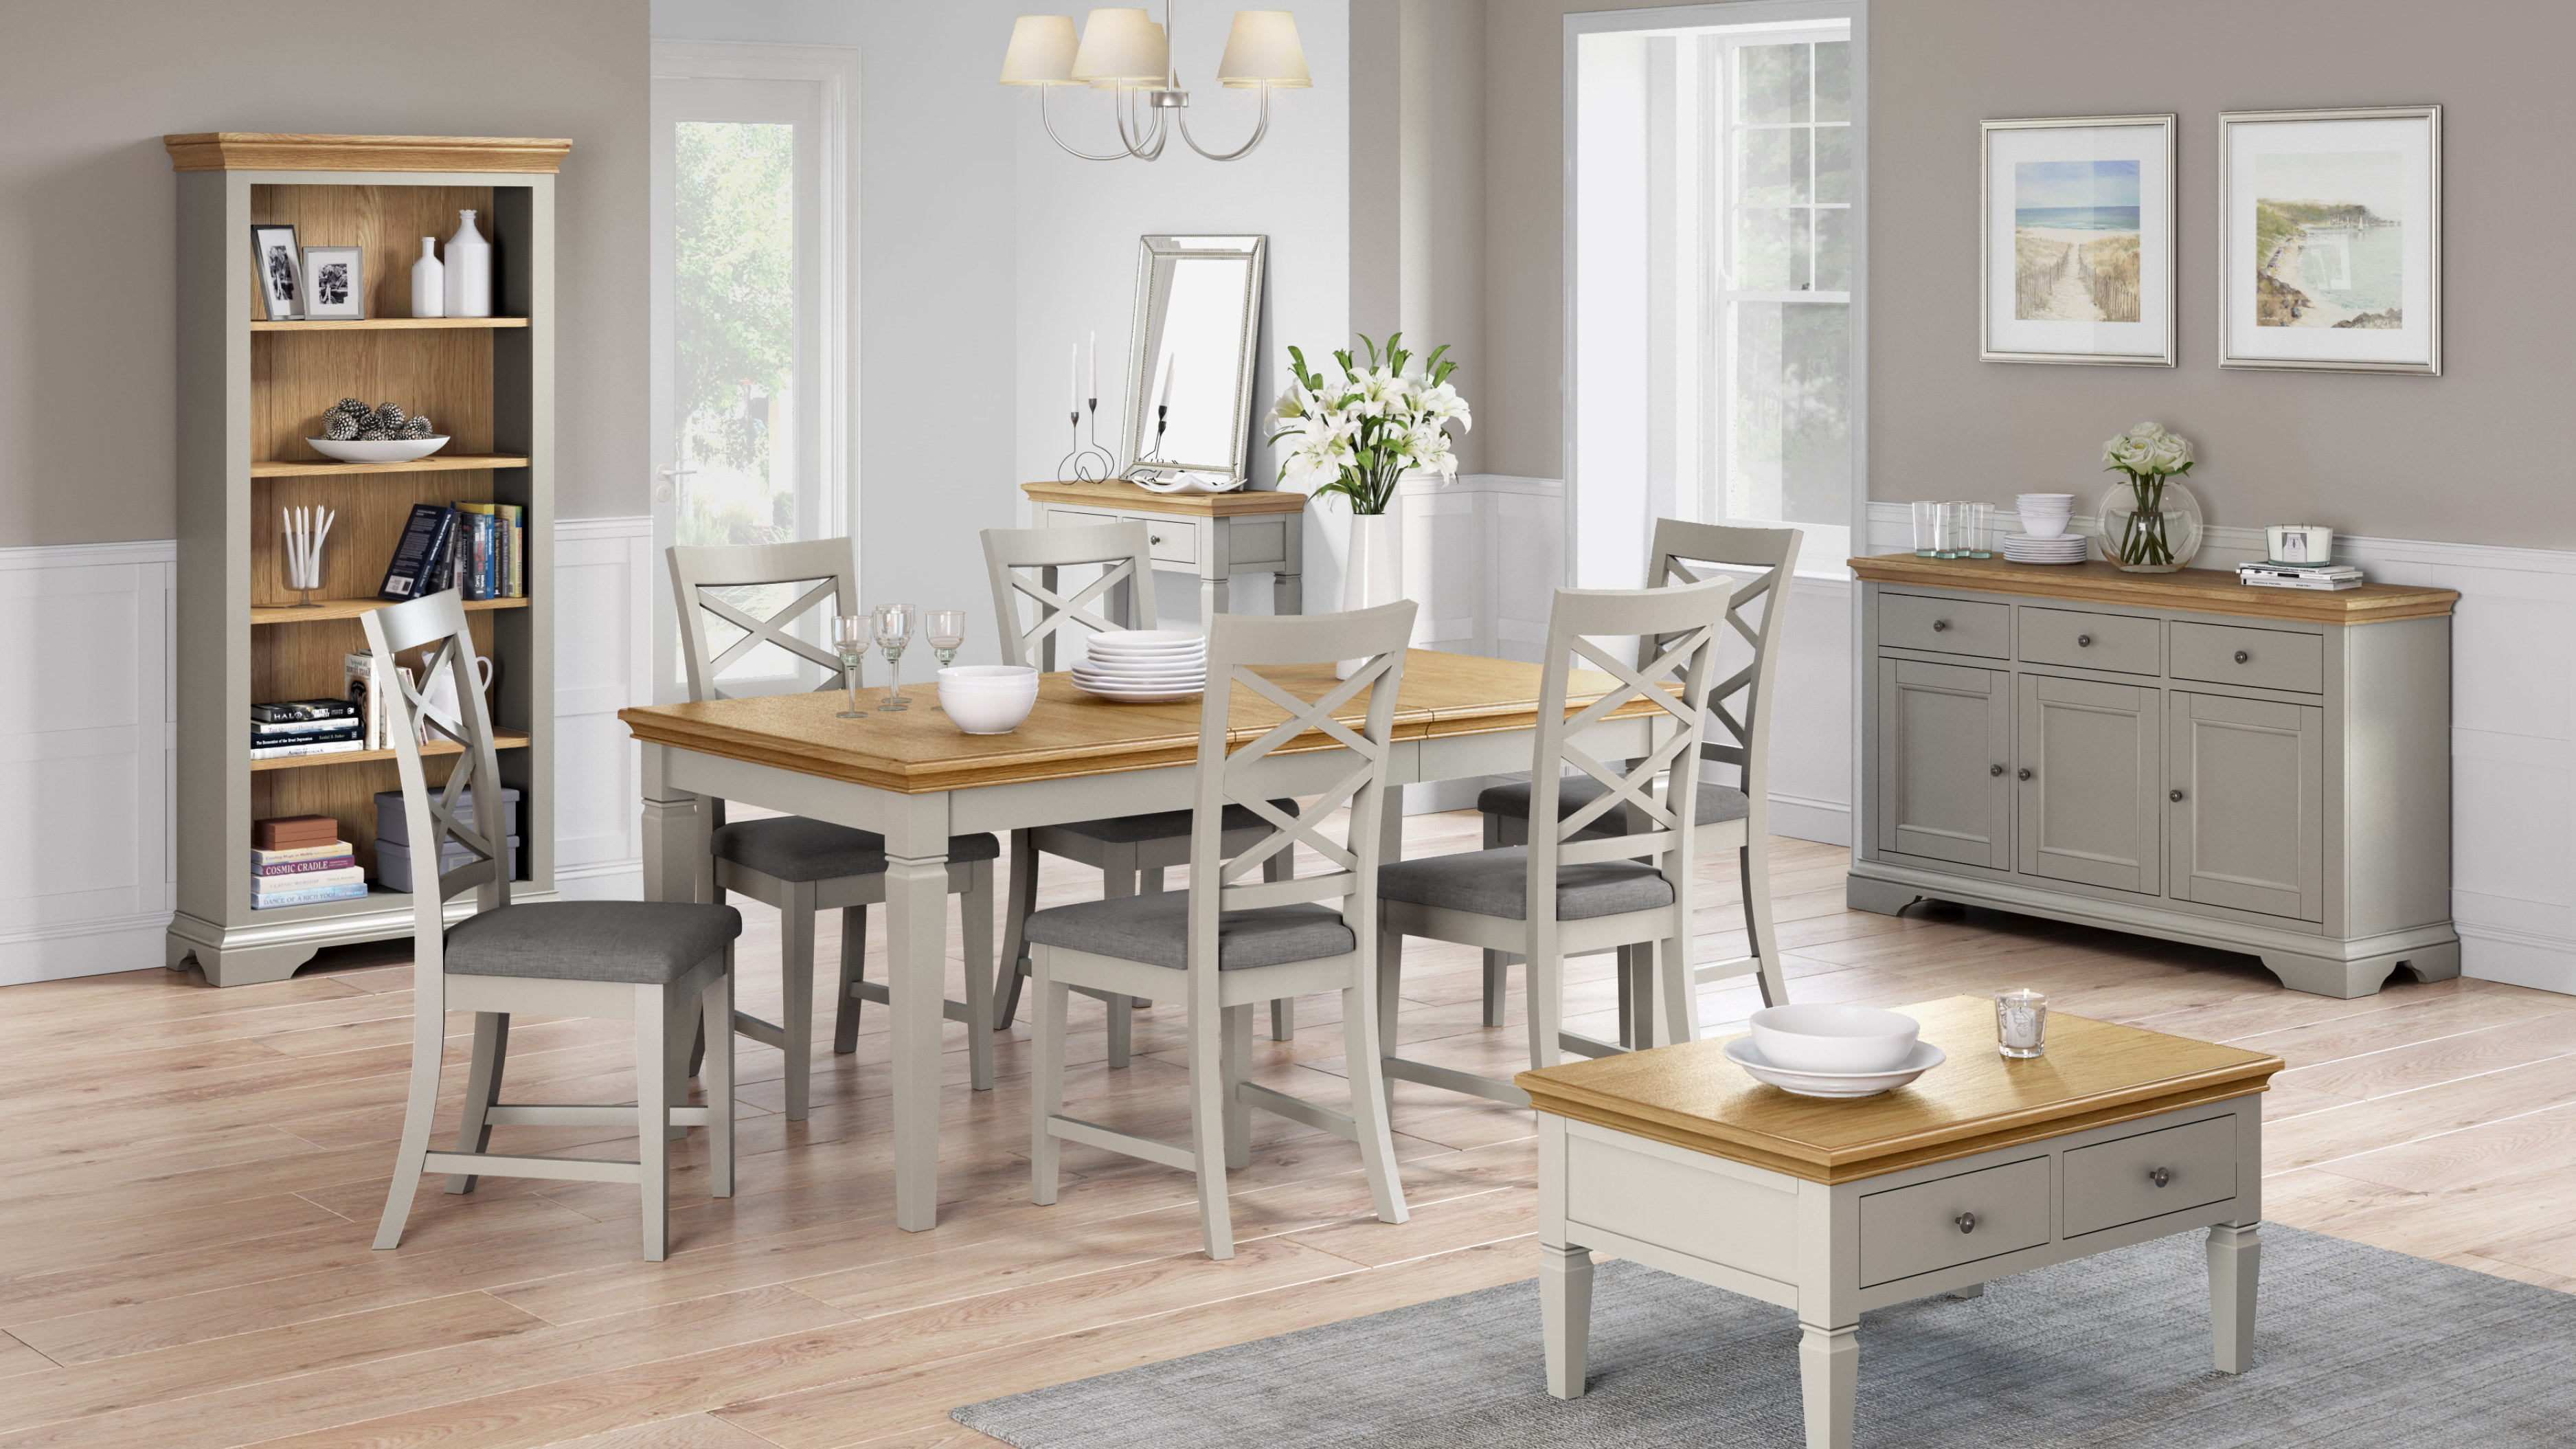 Rustique Home Sicily Painted and Natural Oak Collection